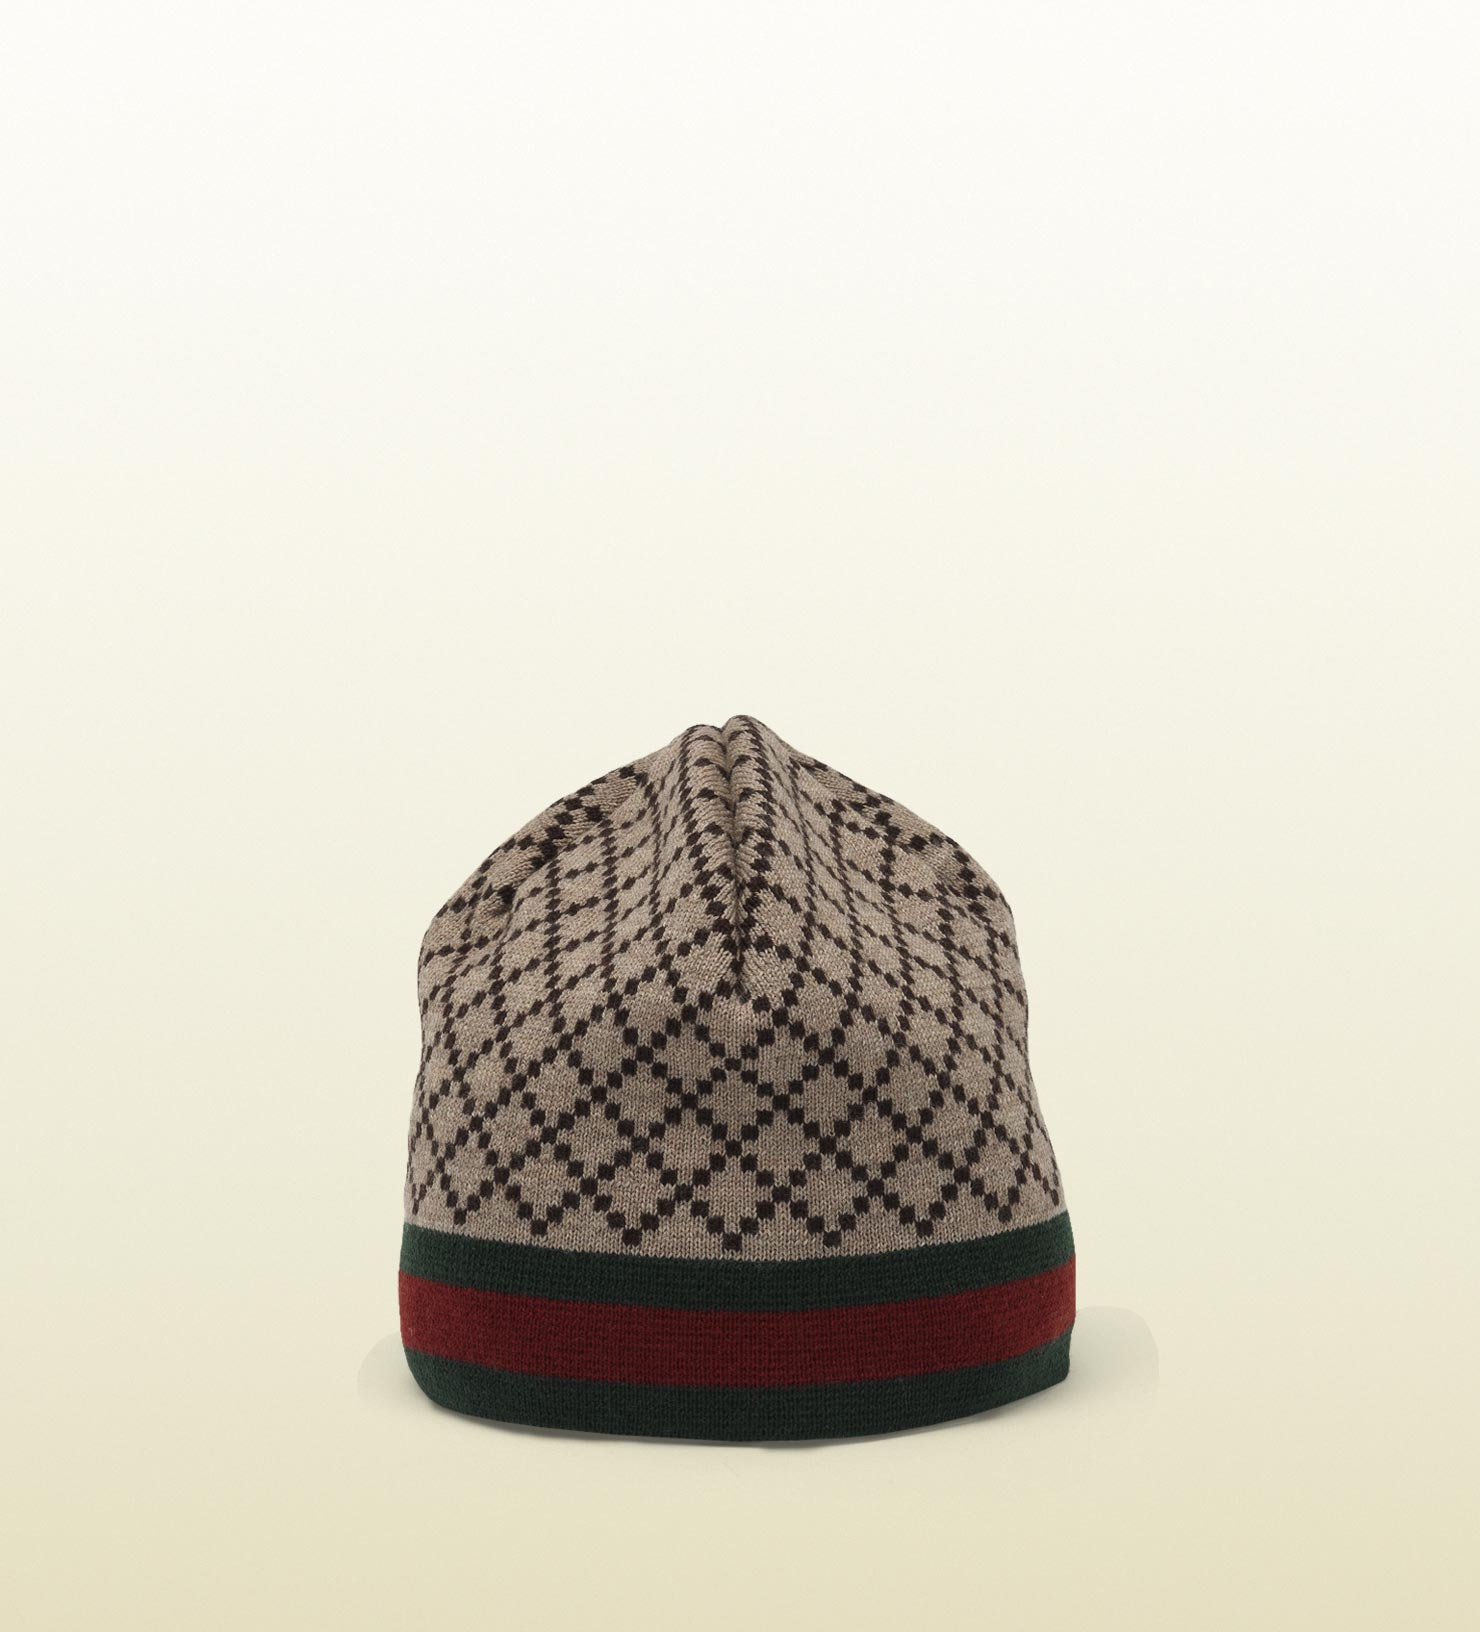 Gucci Hats For Men: Gucci Diamante Pattern Knit Hat With Web Detail In Brown